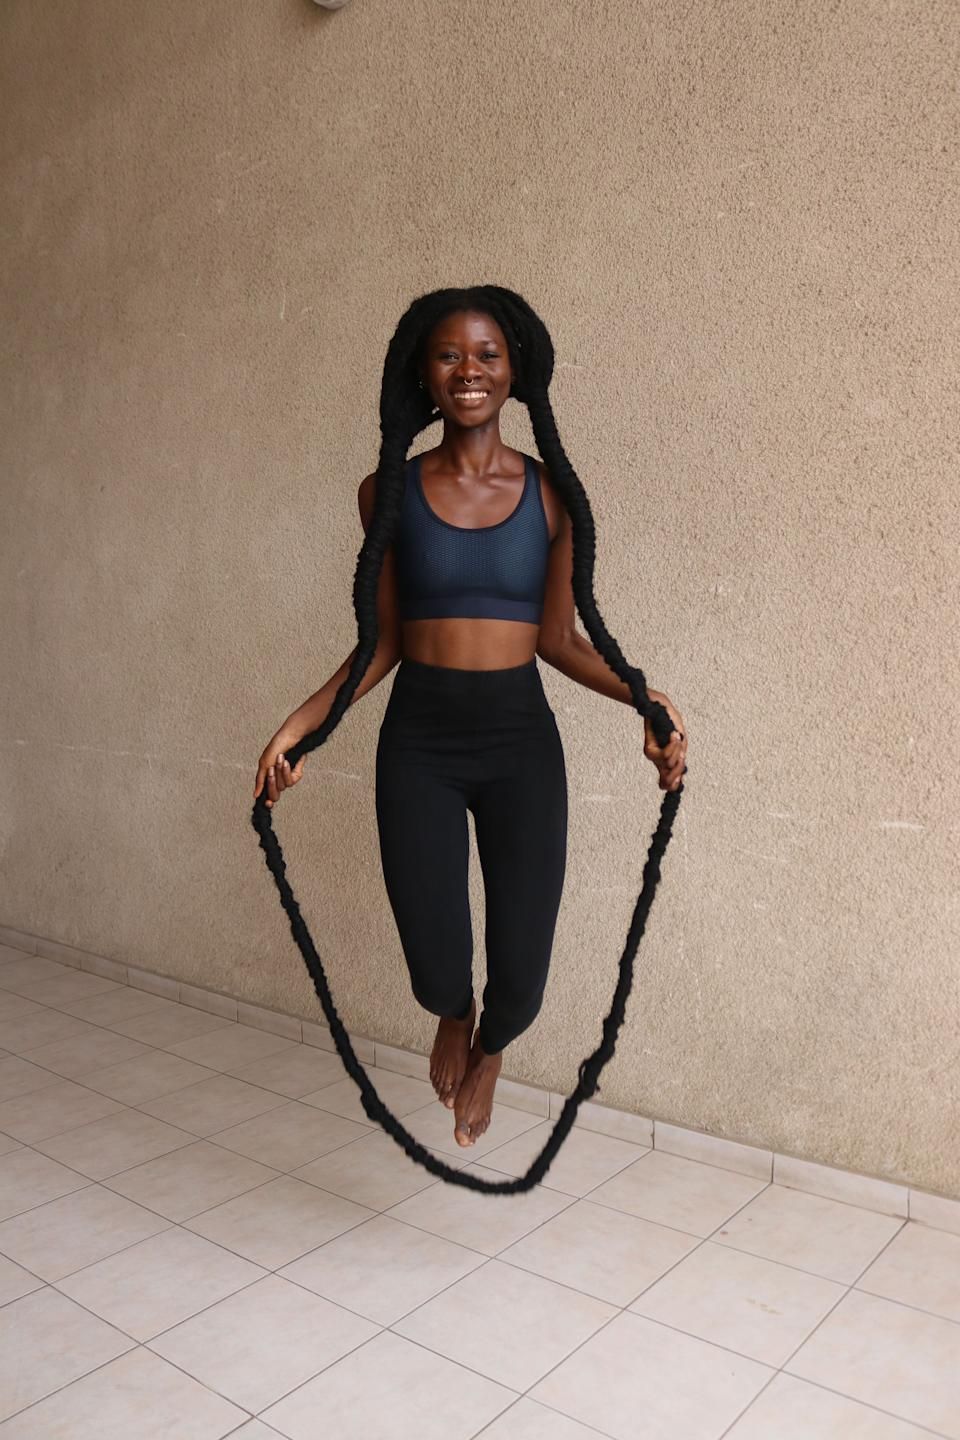 Laetitia Ky is the record holder for the most skips over own hair in 30 seconds (Image: GUINNESS WORLD RECORDS 2022)